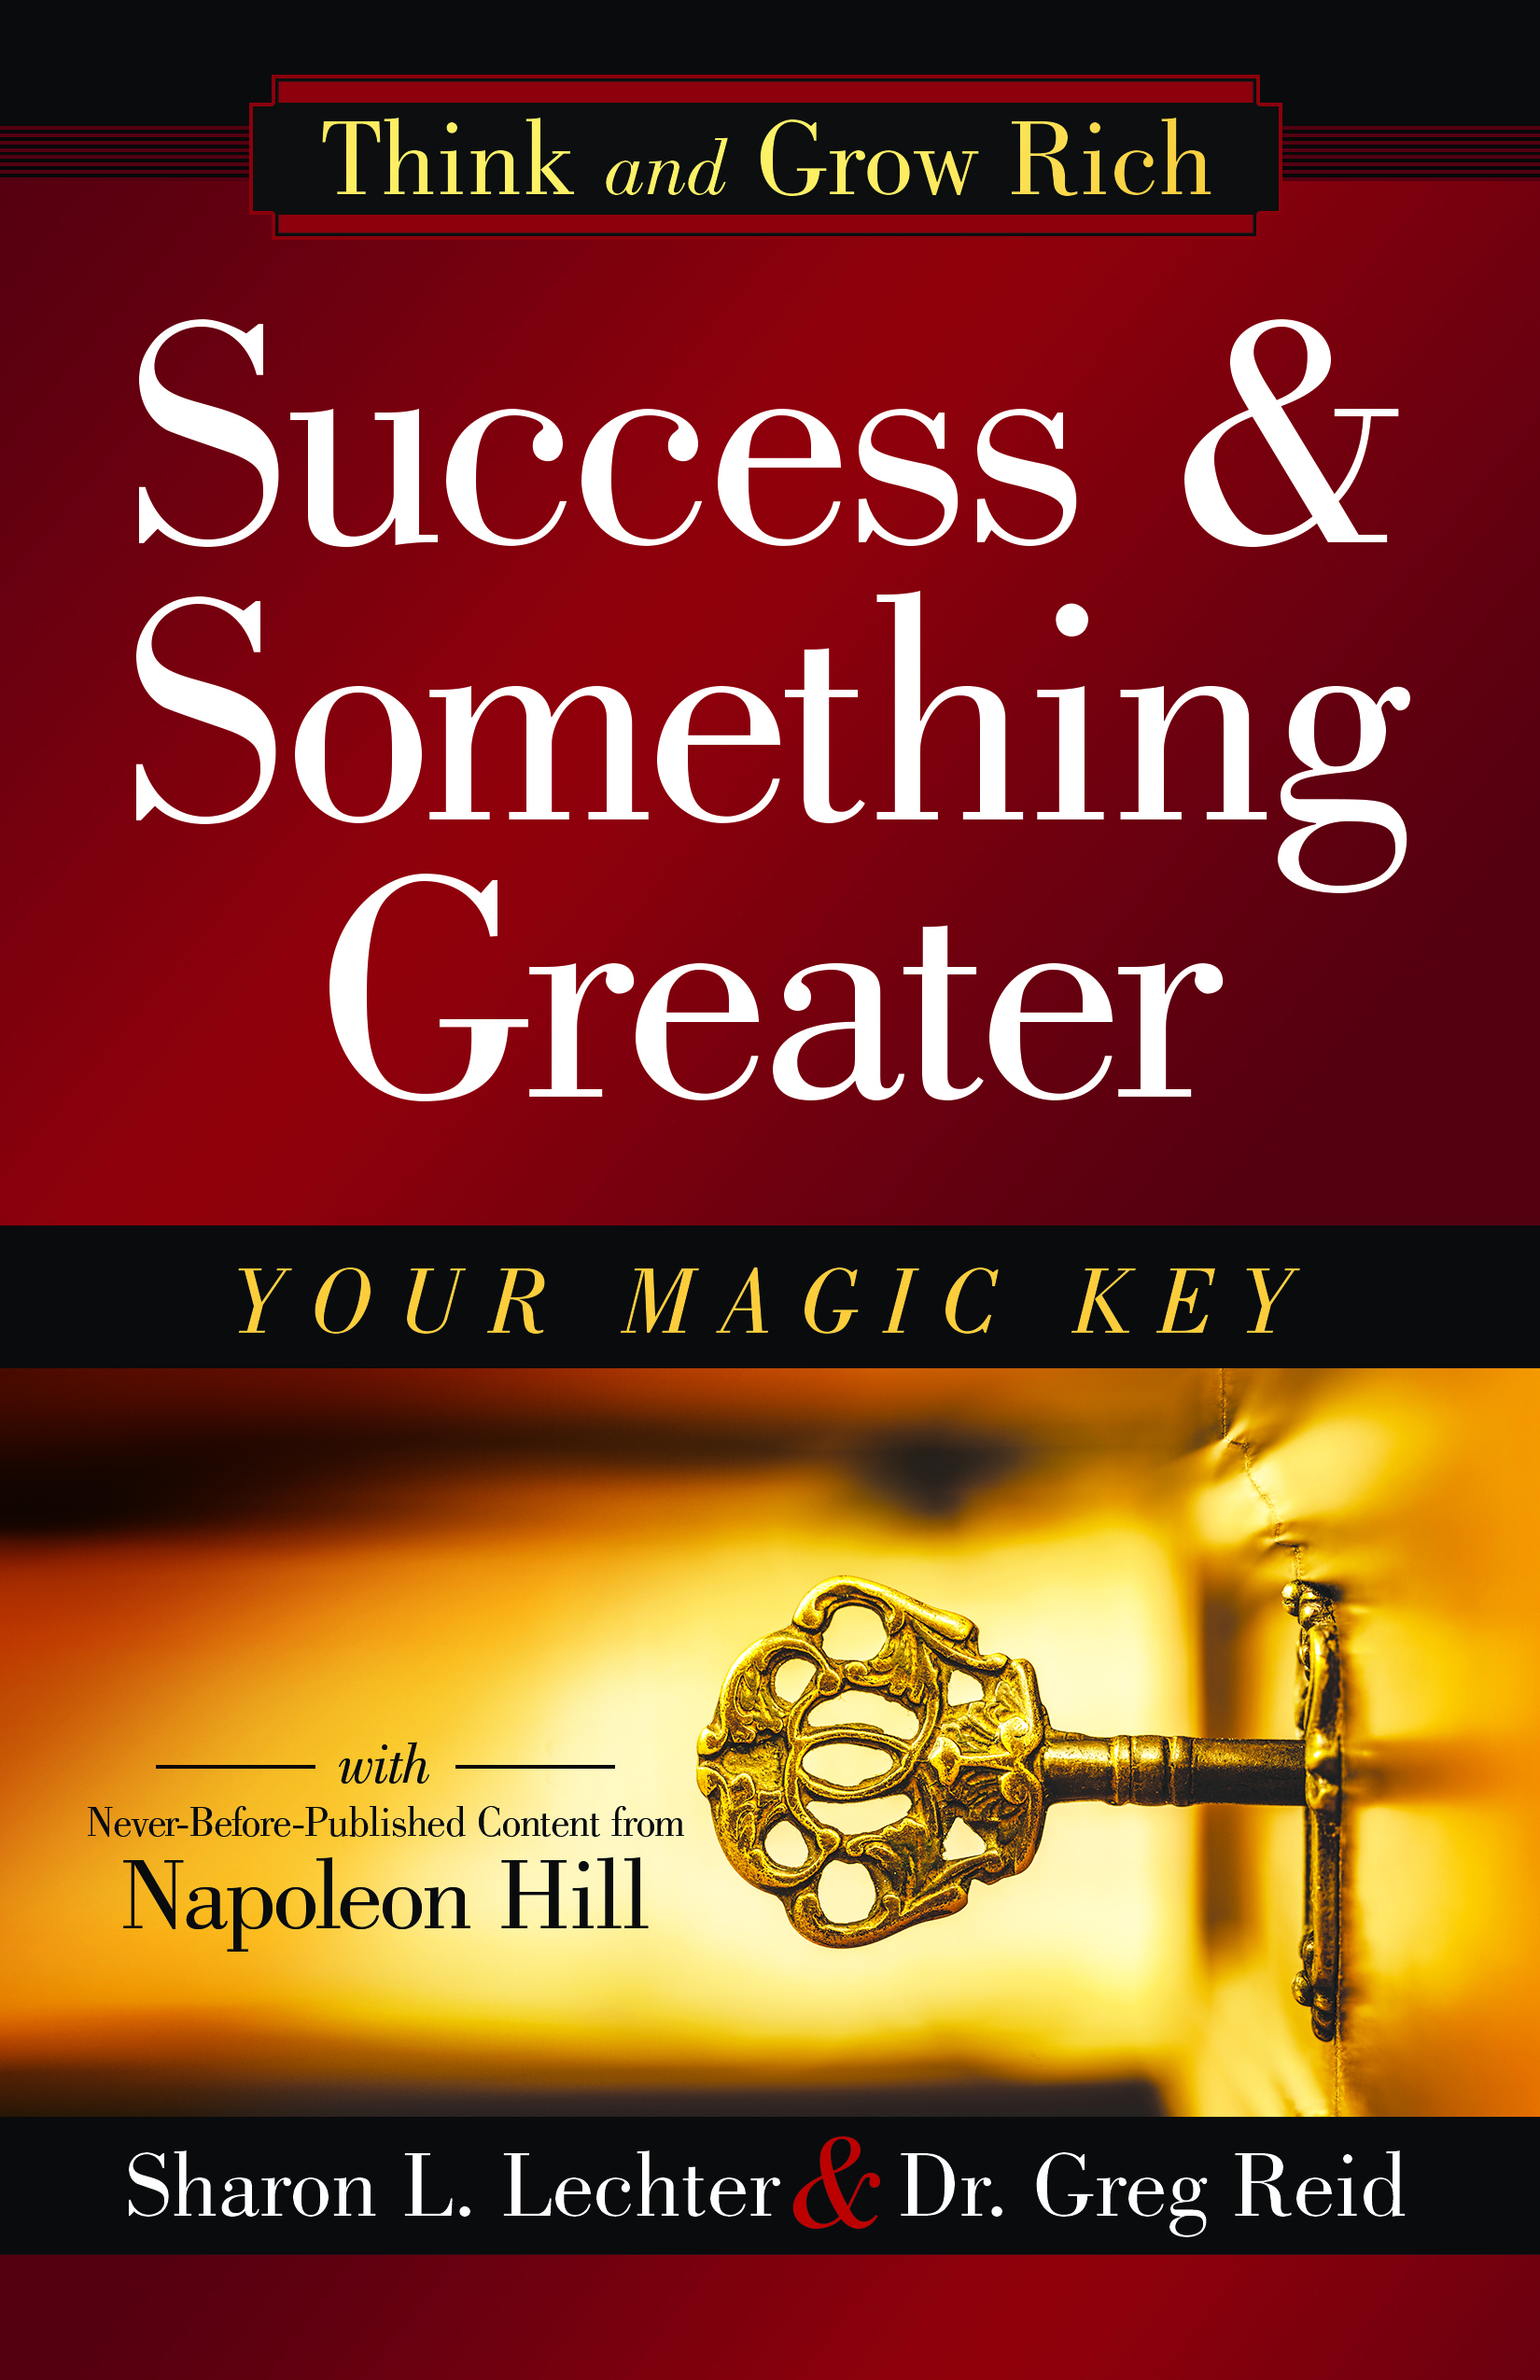 Success & Something Greater - By Sharon L. Lechter & Dr. Greg Reid